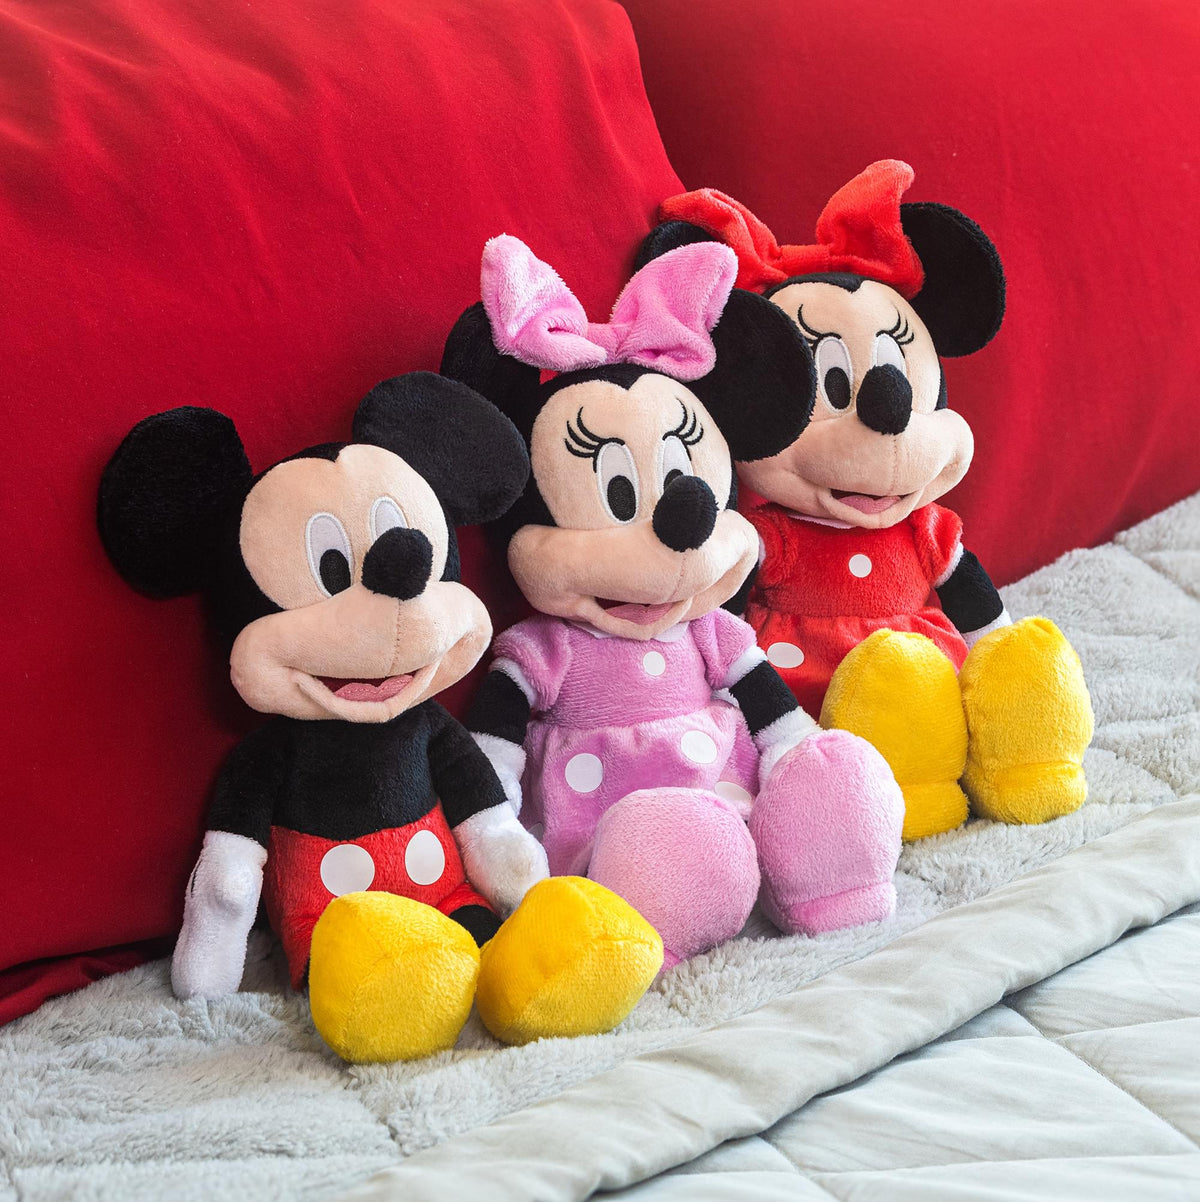 Disney Minnie Mouse 11 inch Child Plush Toy Stuffed Character Doll